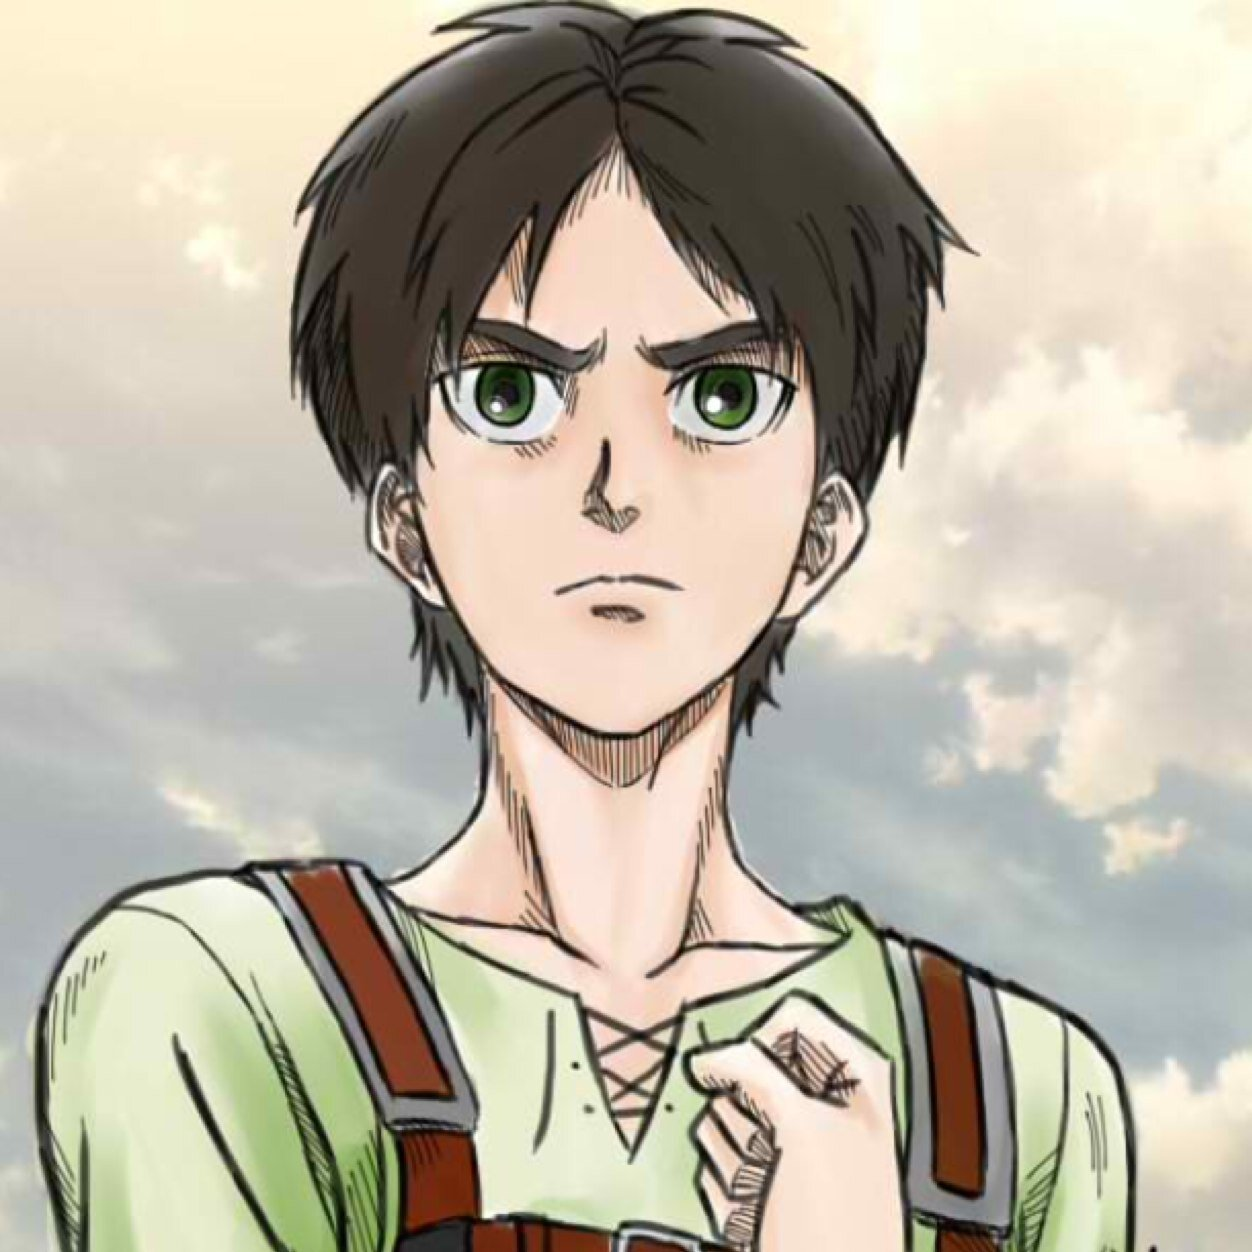 Eren Yeager | Attack on Titan Wiki | FANDOM powered by Wikia